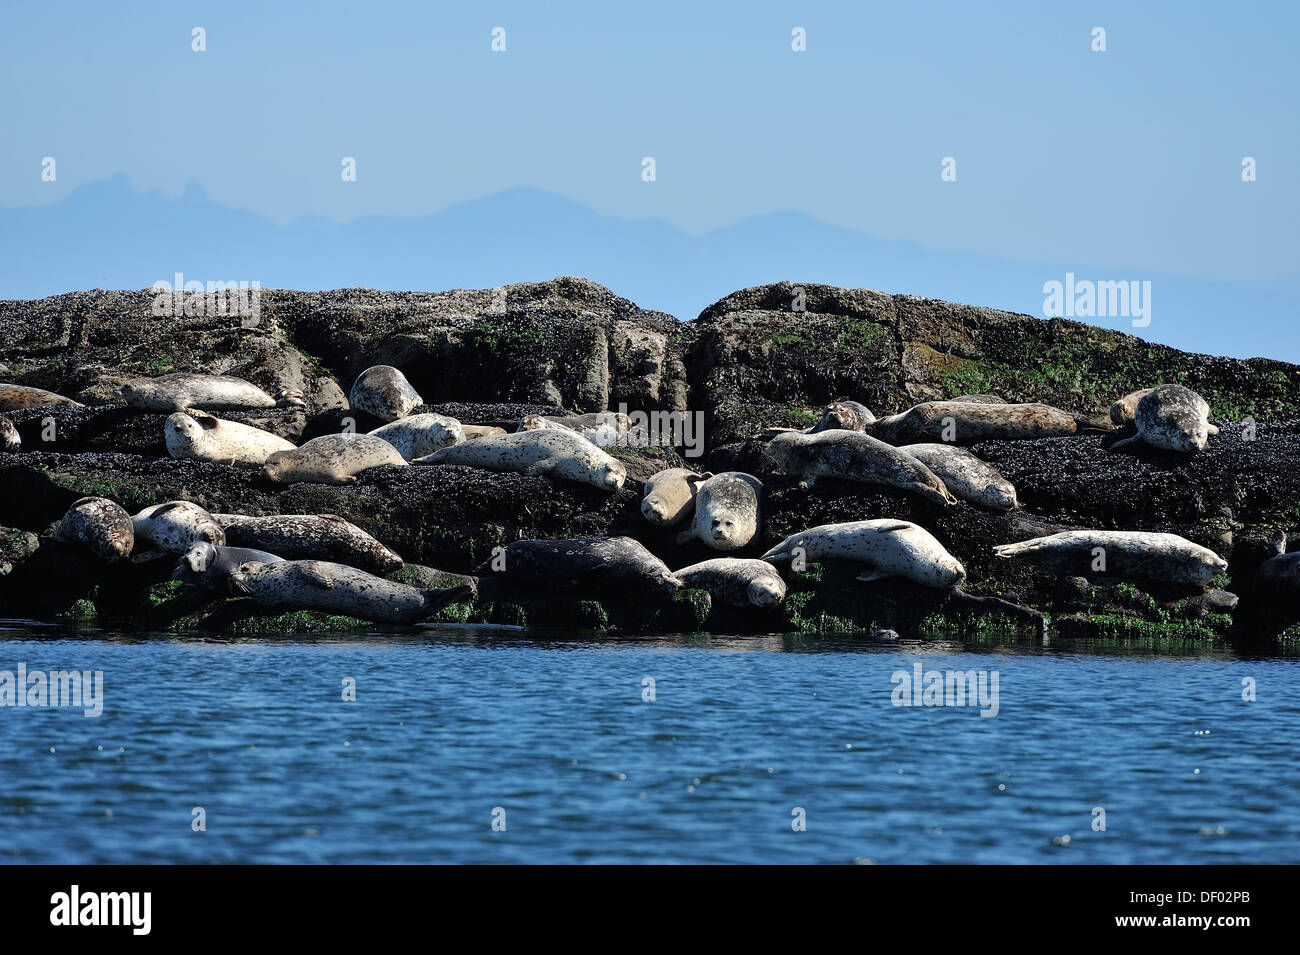 Harbor seals basking in the warm sunlight on a rocky island Stock Photo